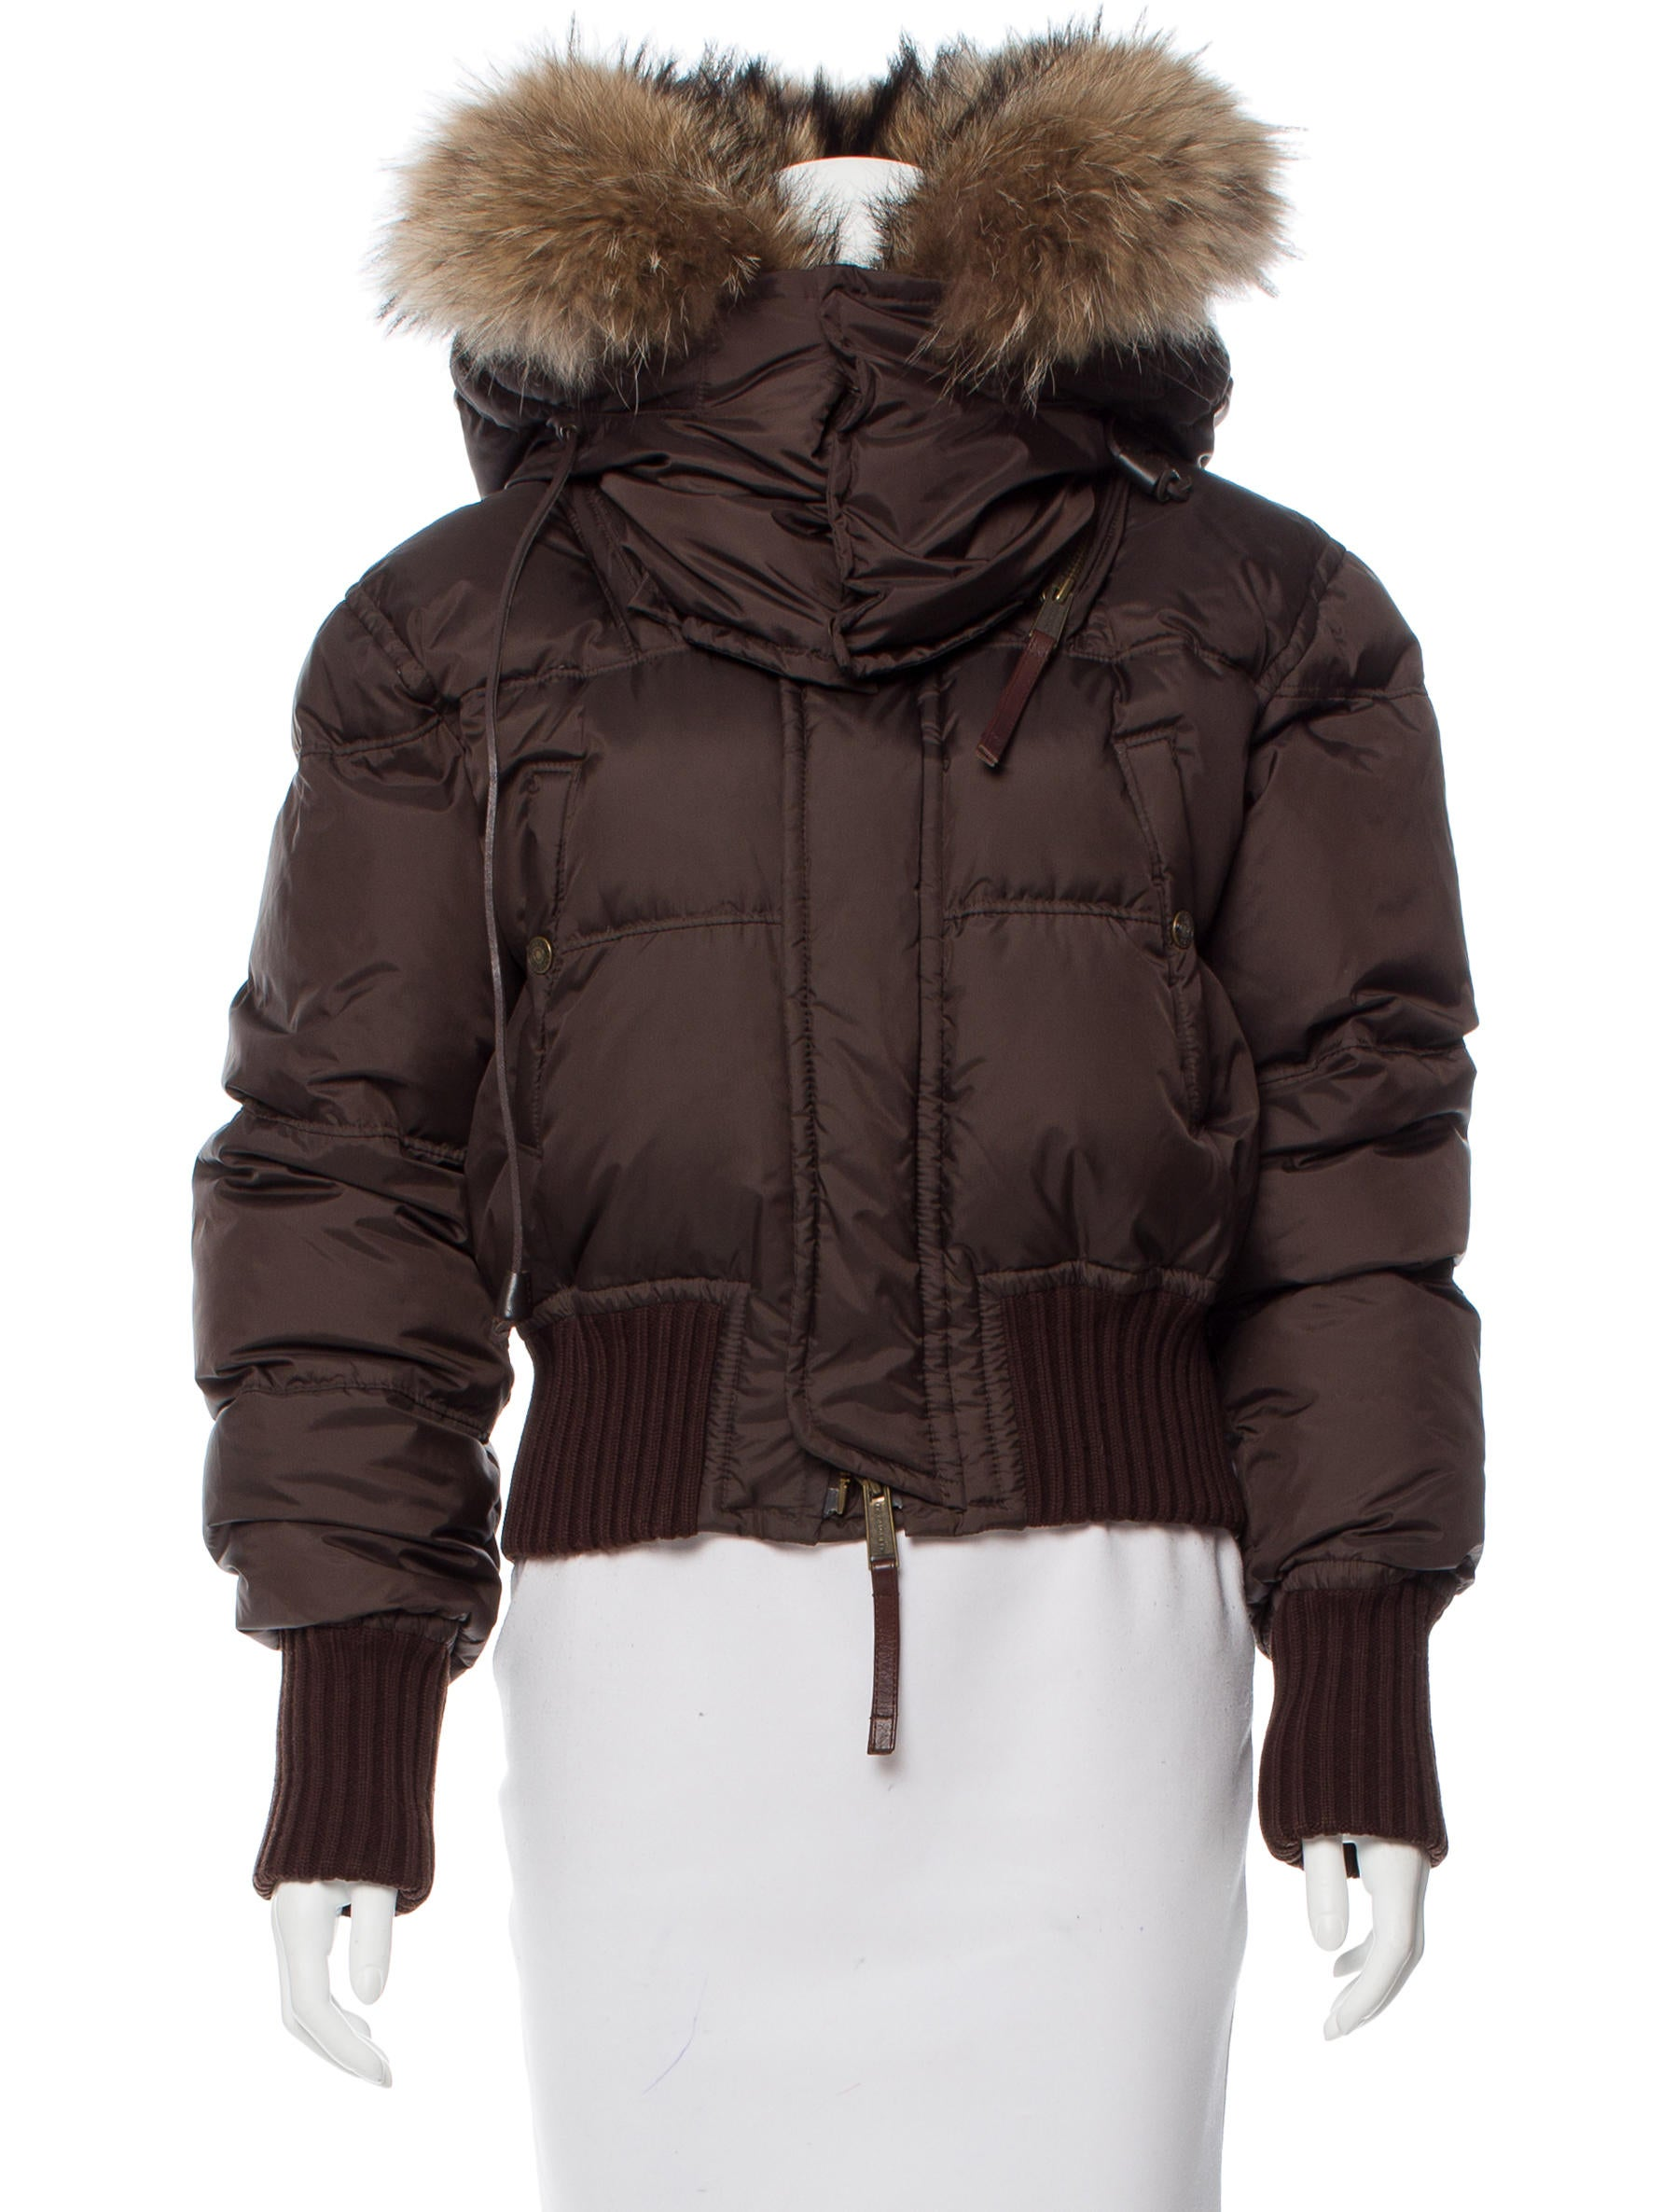 Find great deals on eBay for fox fur trimmed jacket. Shop with confidence.